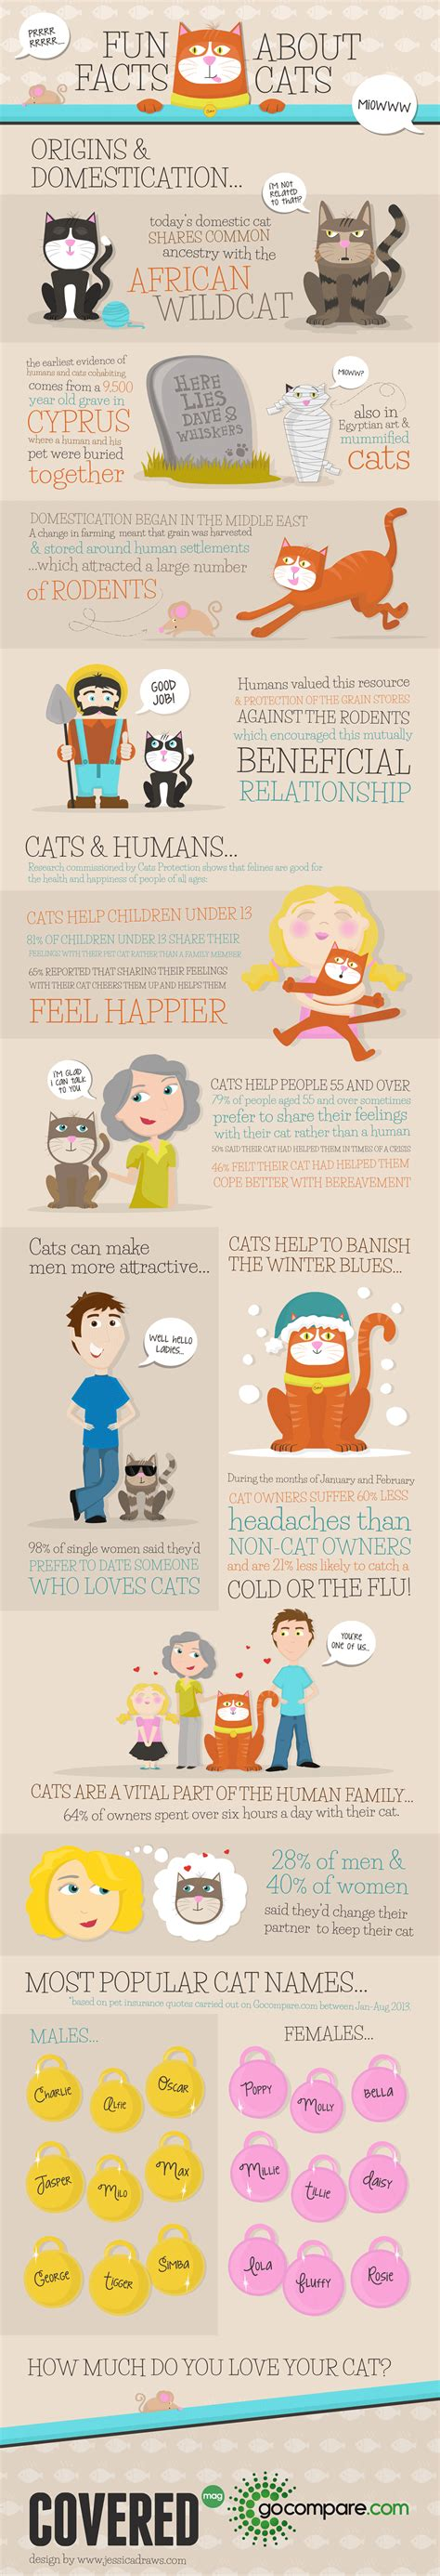 infographic fun facts about cats covered mag presented by gocompare com